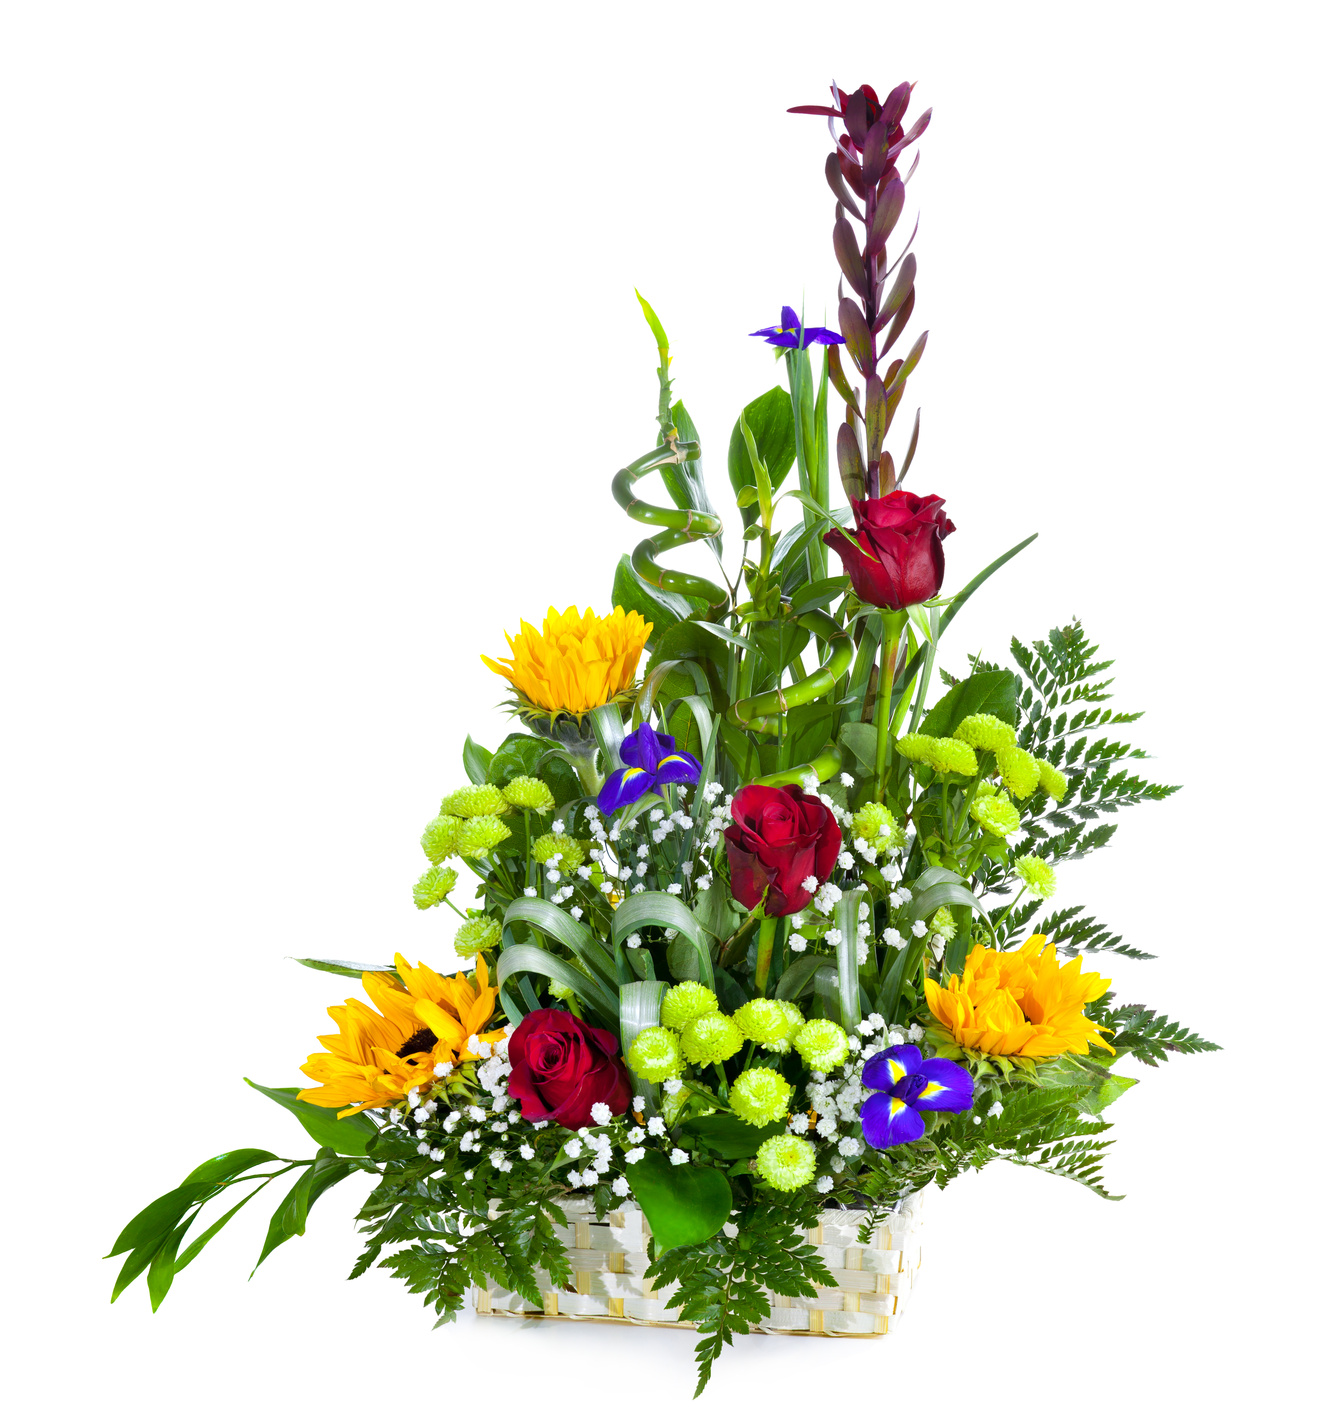 Your local florist the key to a beautiful bouquet gebh arts floral bright flower bouquet in basket isolated over white background izmirmasajfo